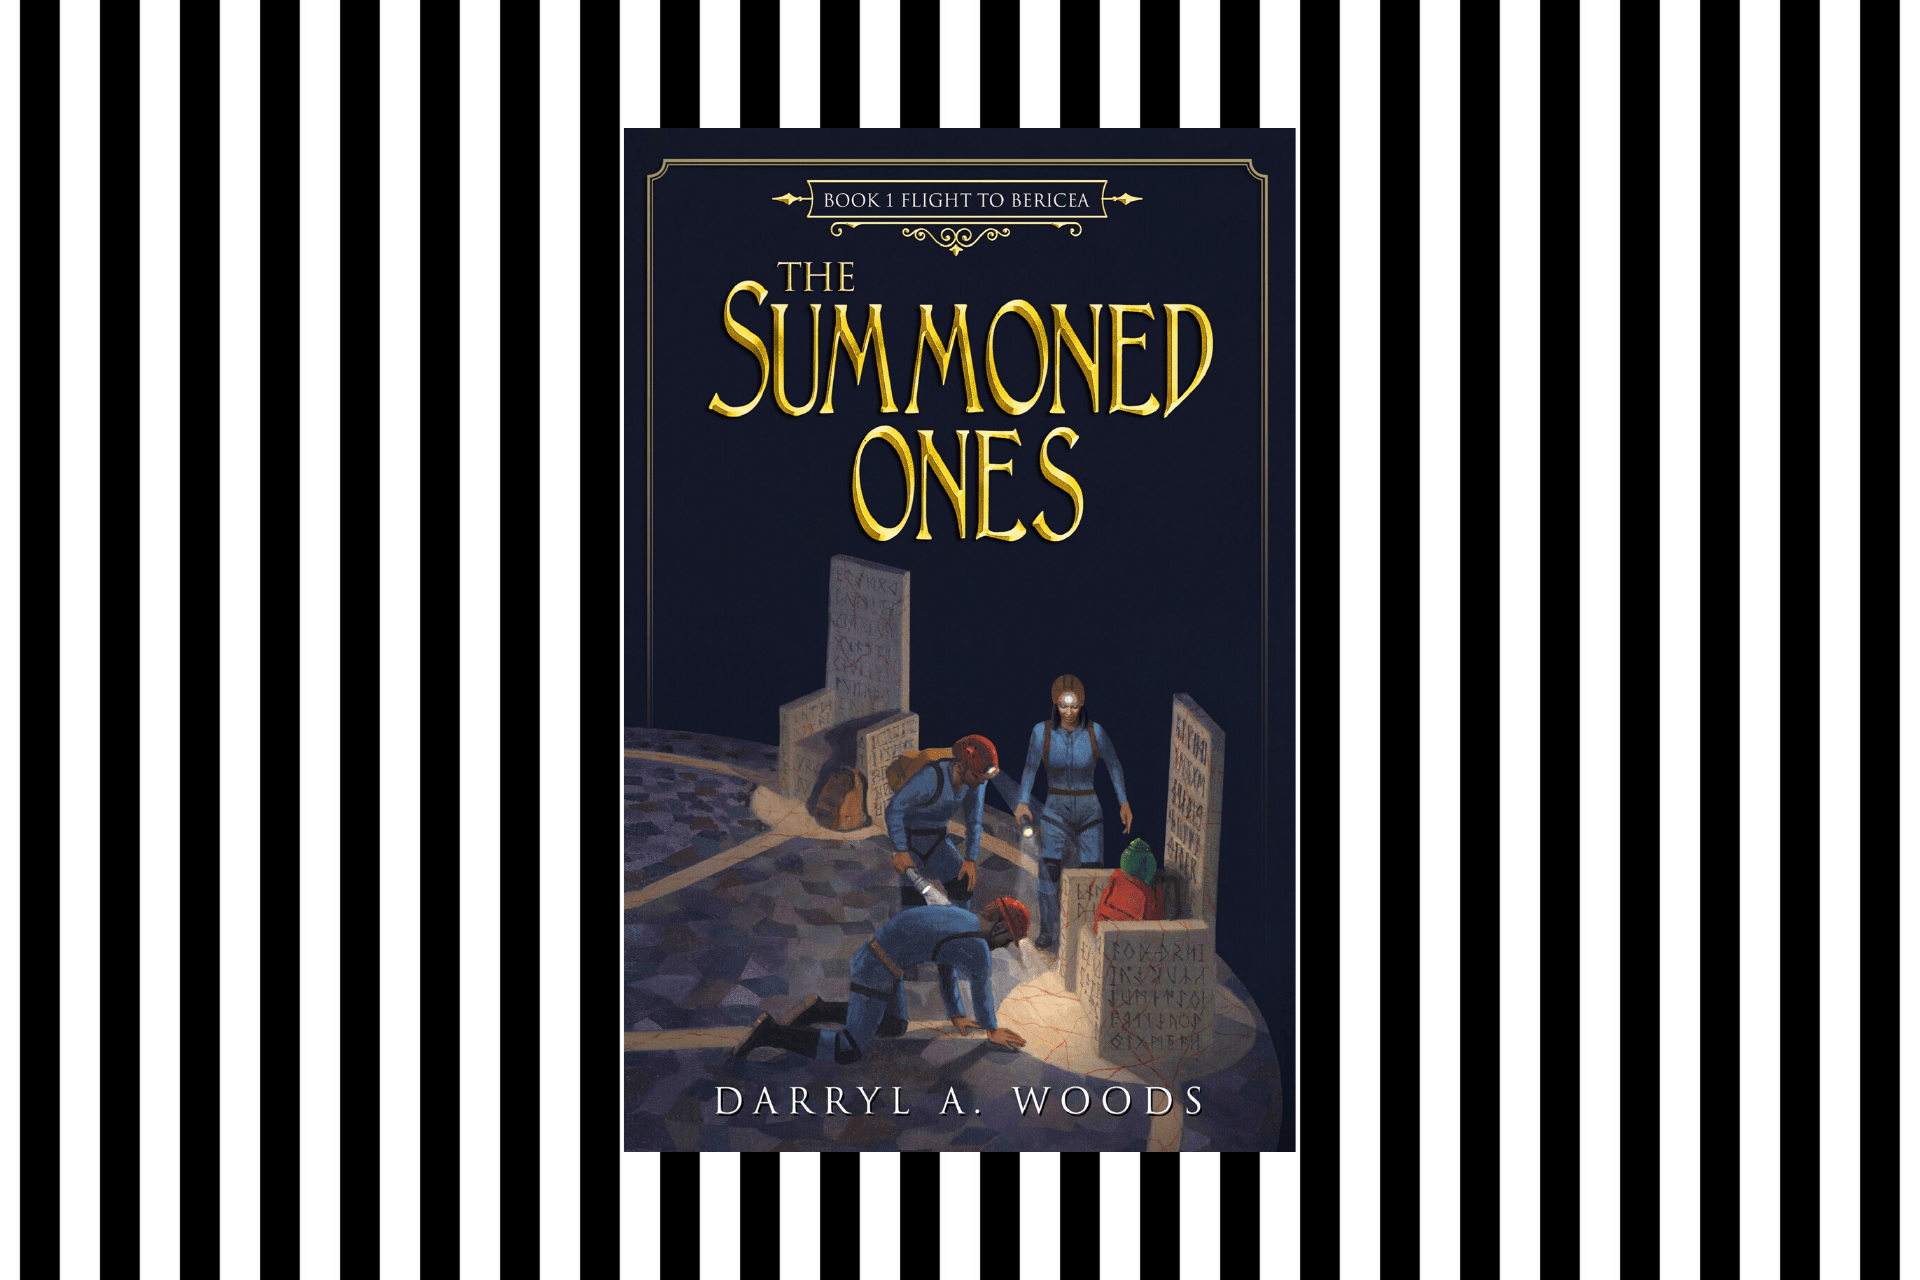 The cover of the Summoned Ones by Darryl A Woods